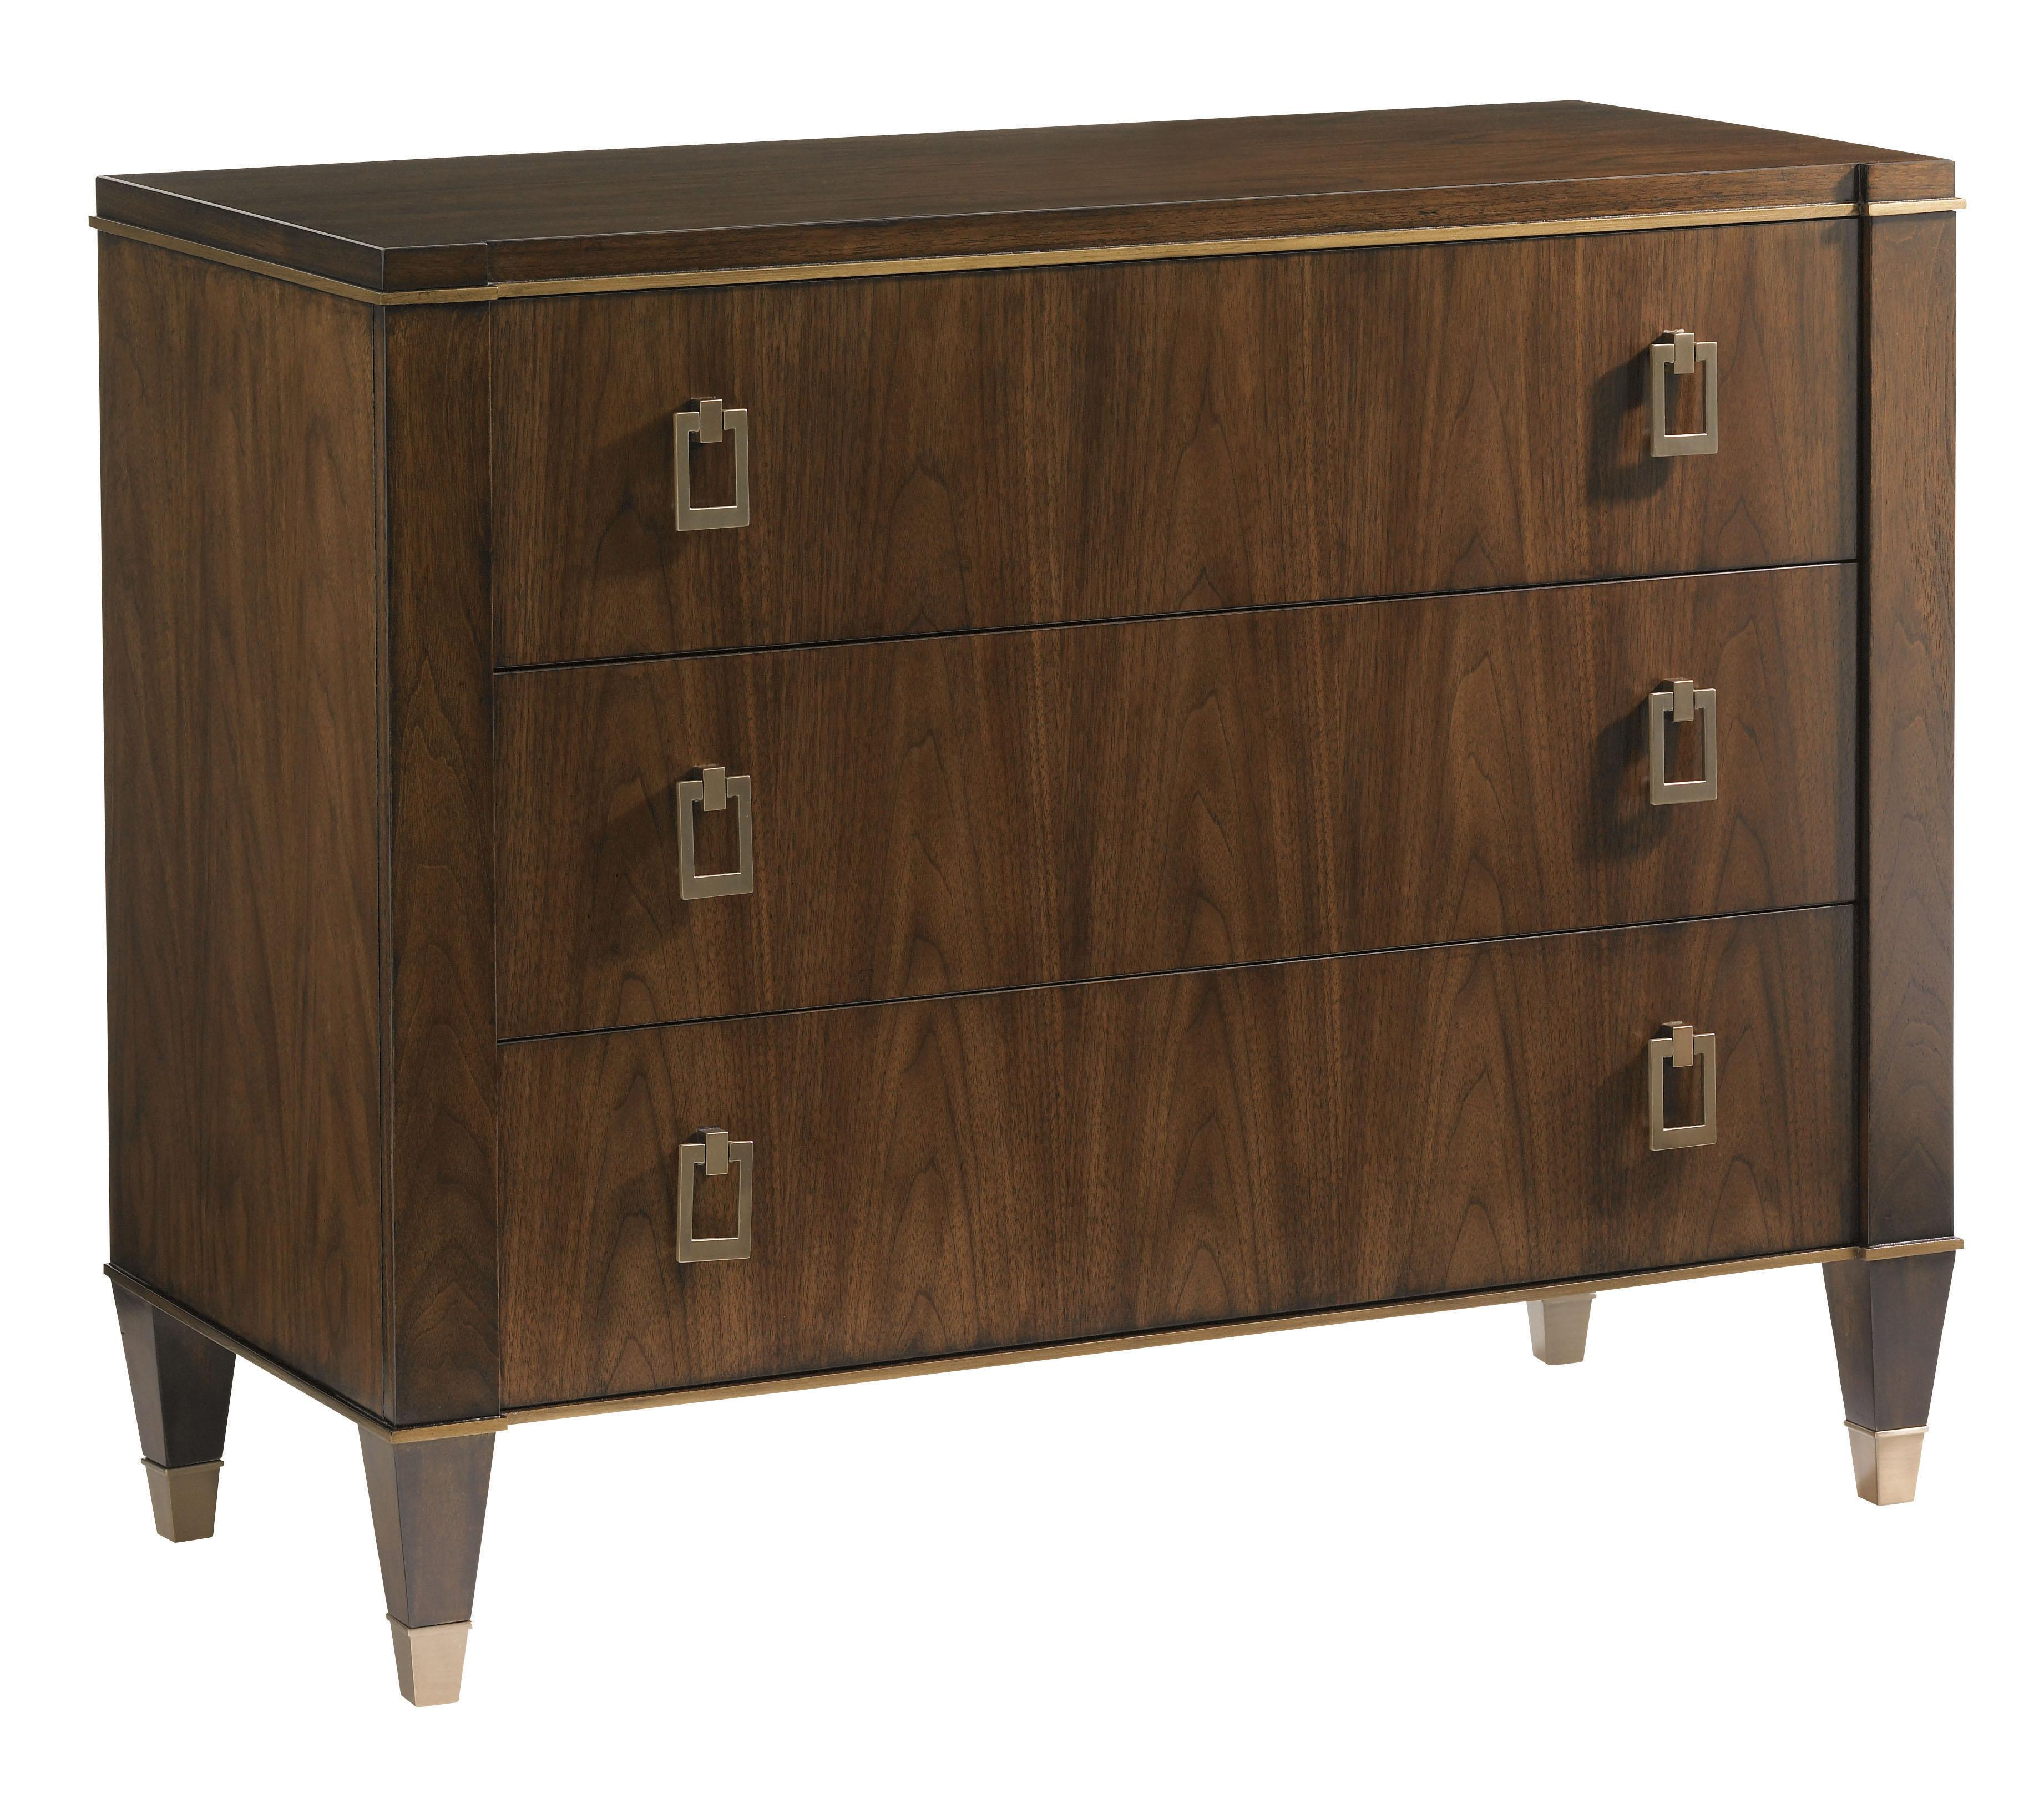 Lexington Tower Place Contemporary Evanston Single Dresser With Accents Of Gold Tipping